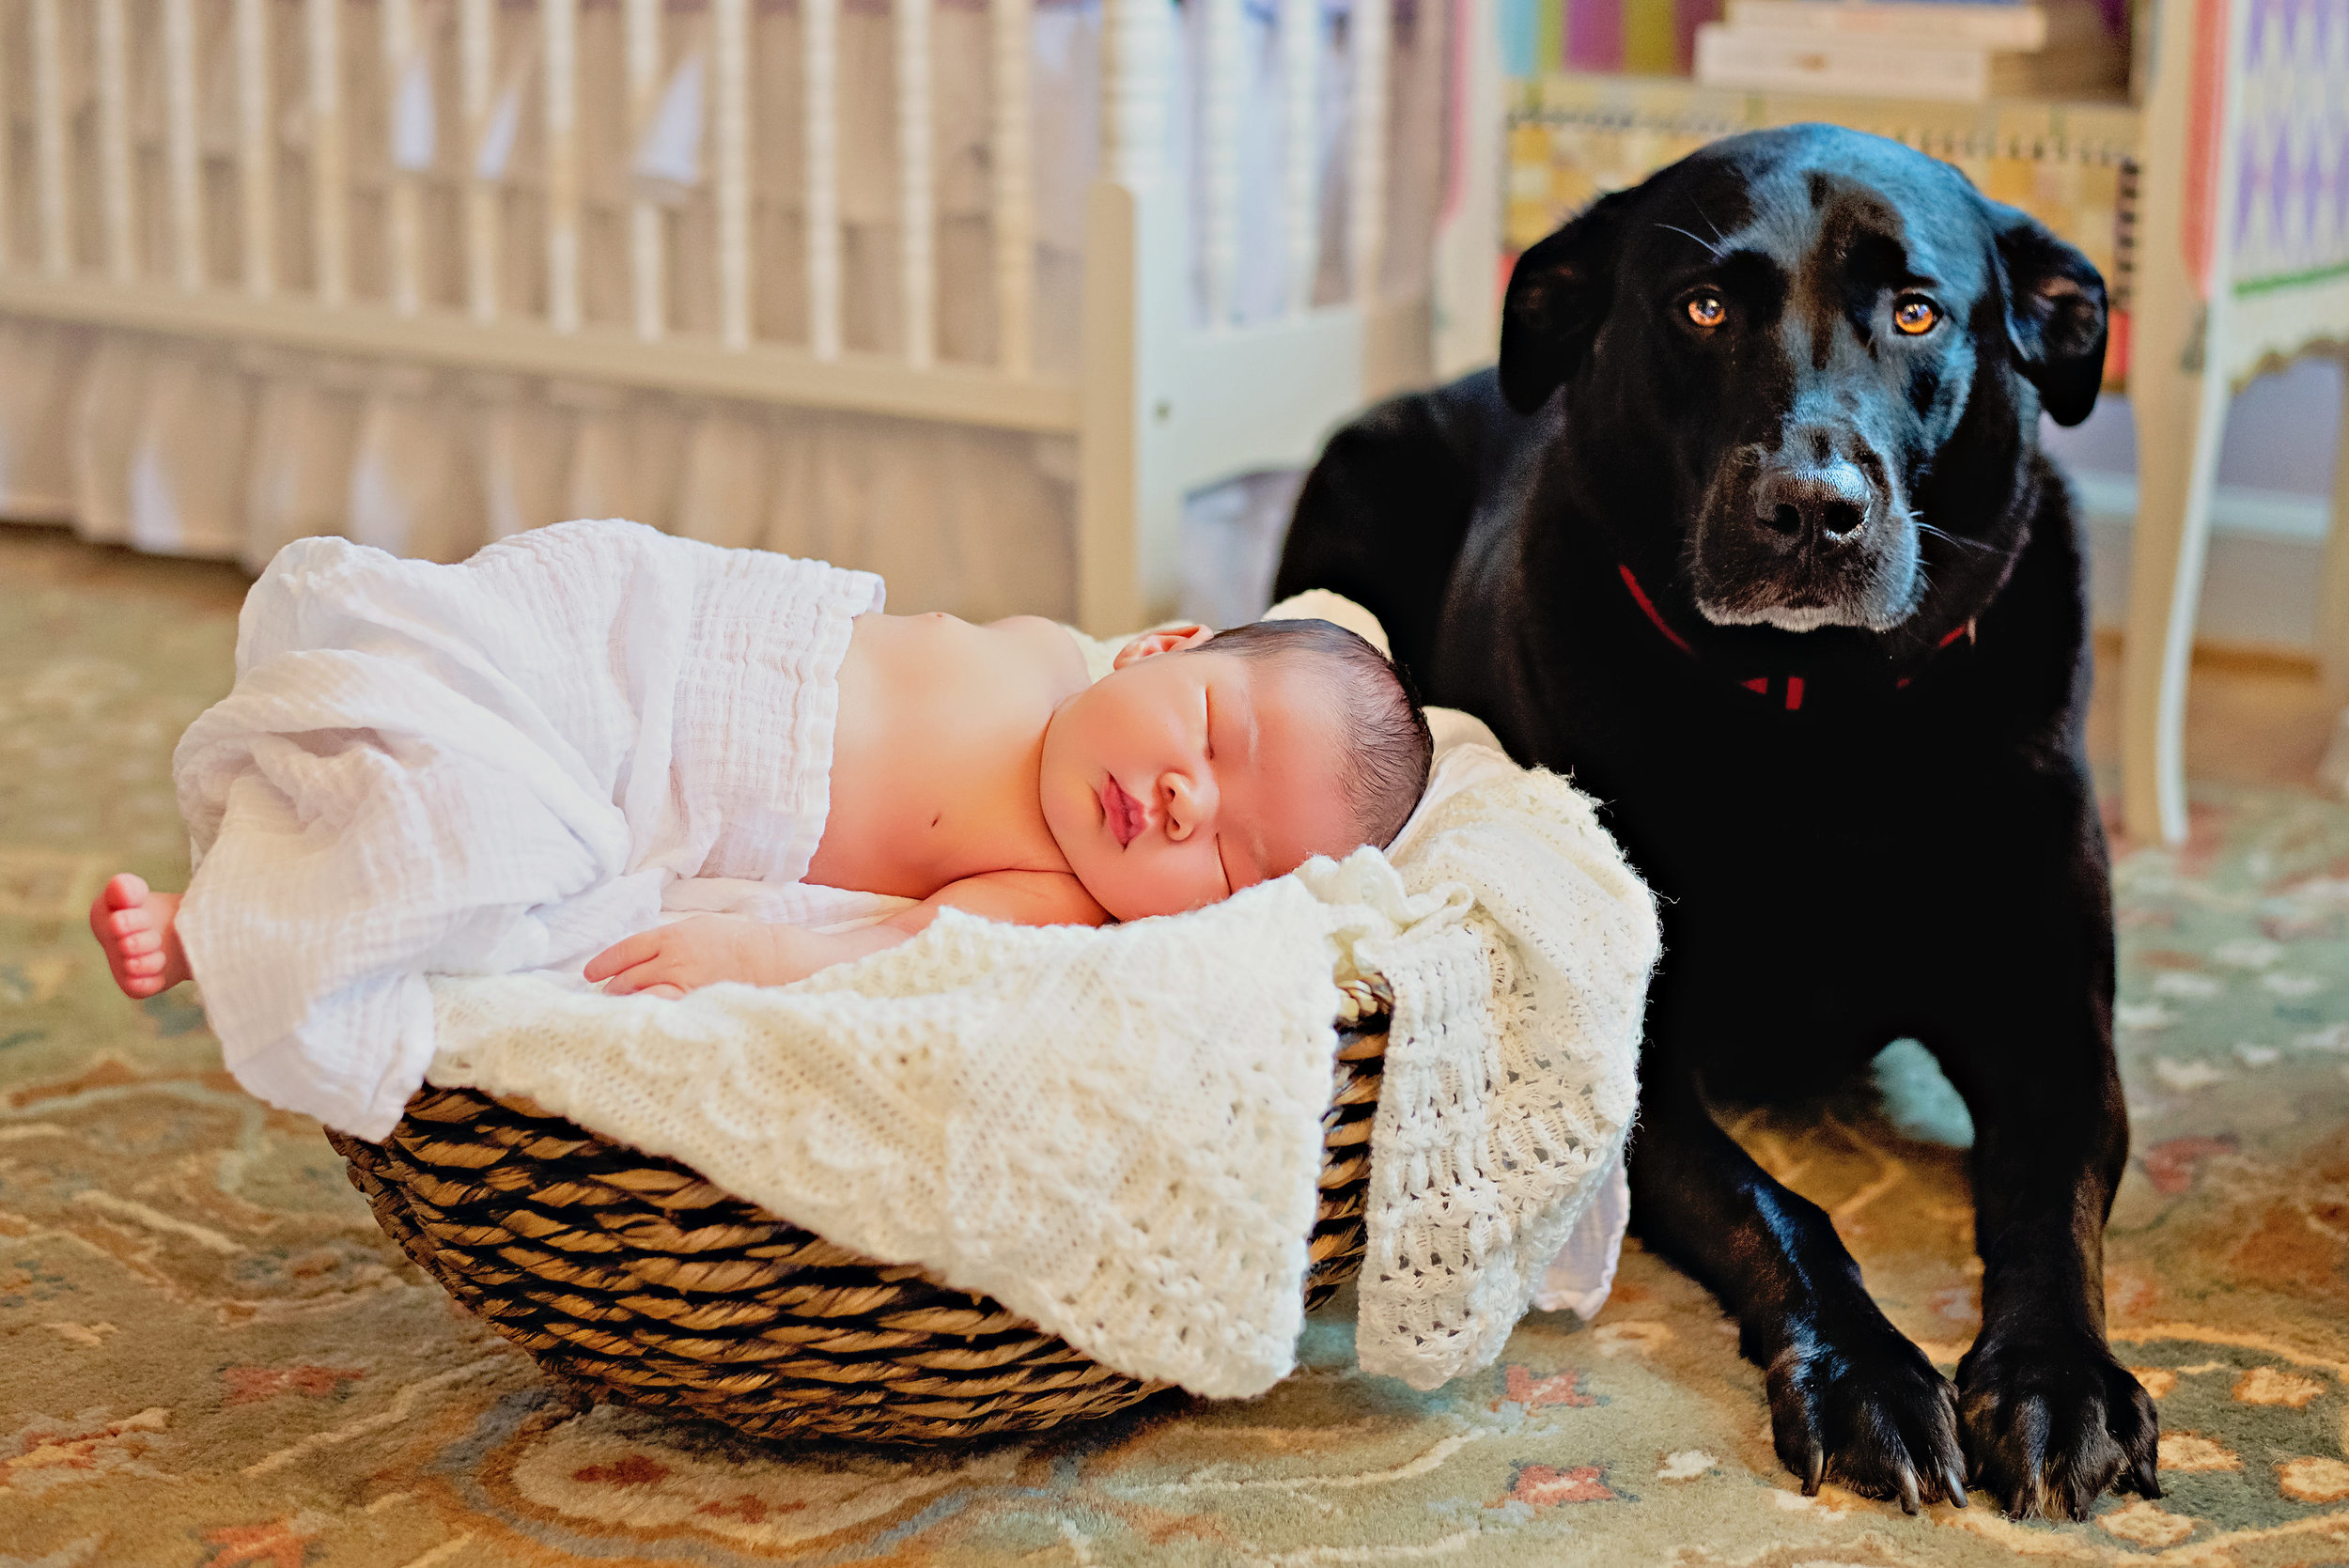 blacklabandnewbornbaby.jpg